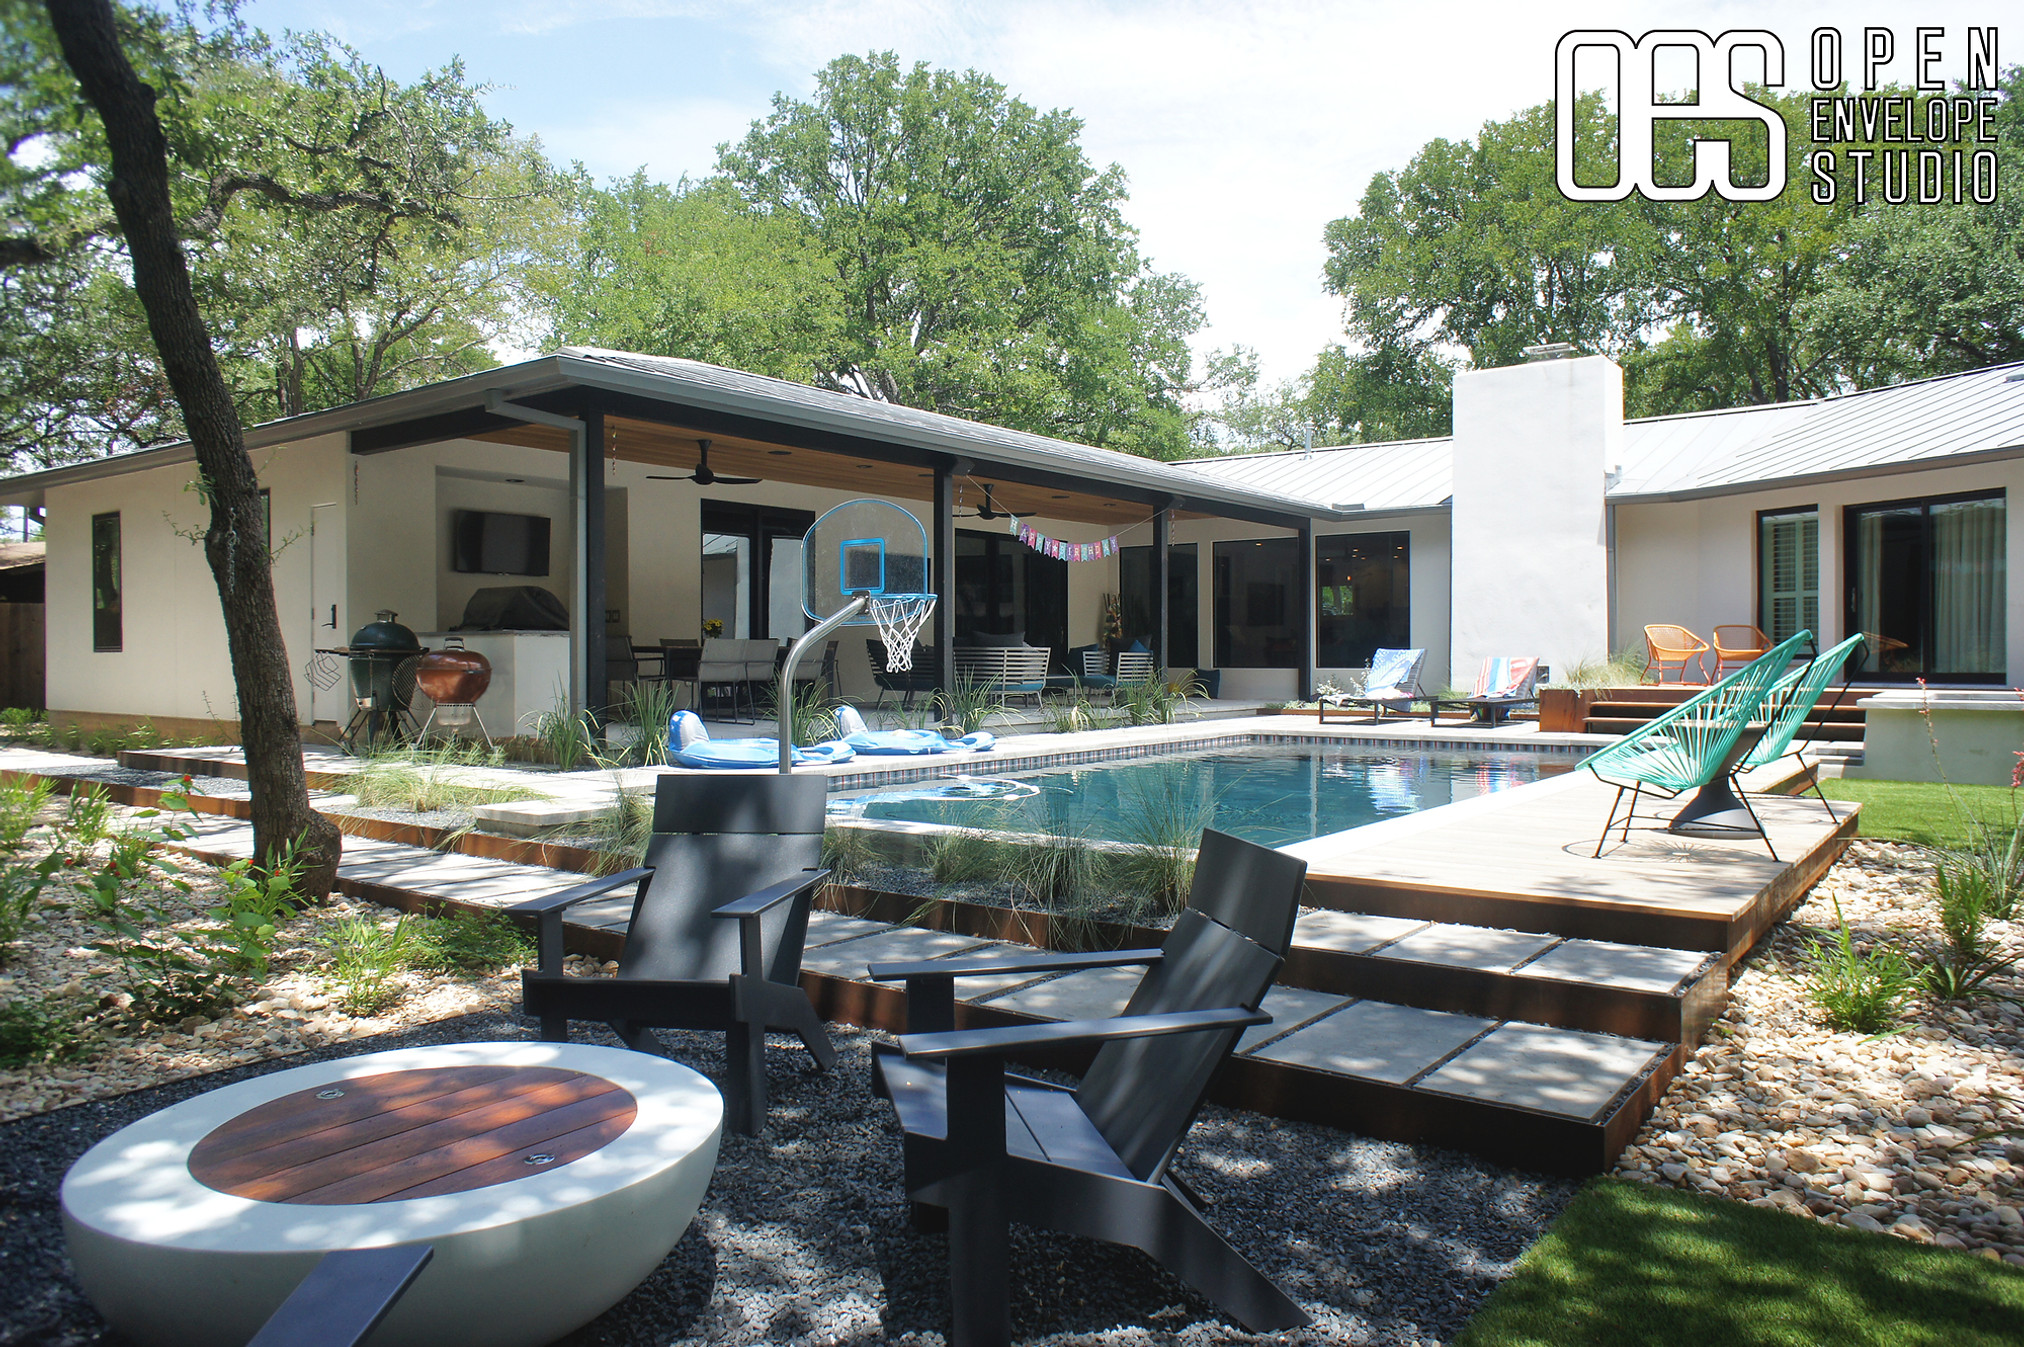 OES | pool and hot tub with floating pavers, ipe decks, artificial turf, steel edging, planting beds, Lueders pavers, Texas basalt gravel